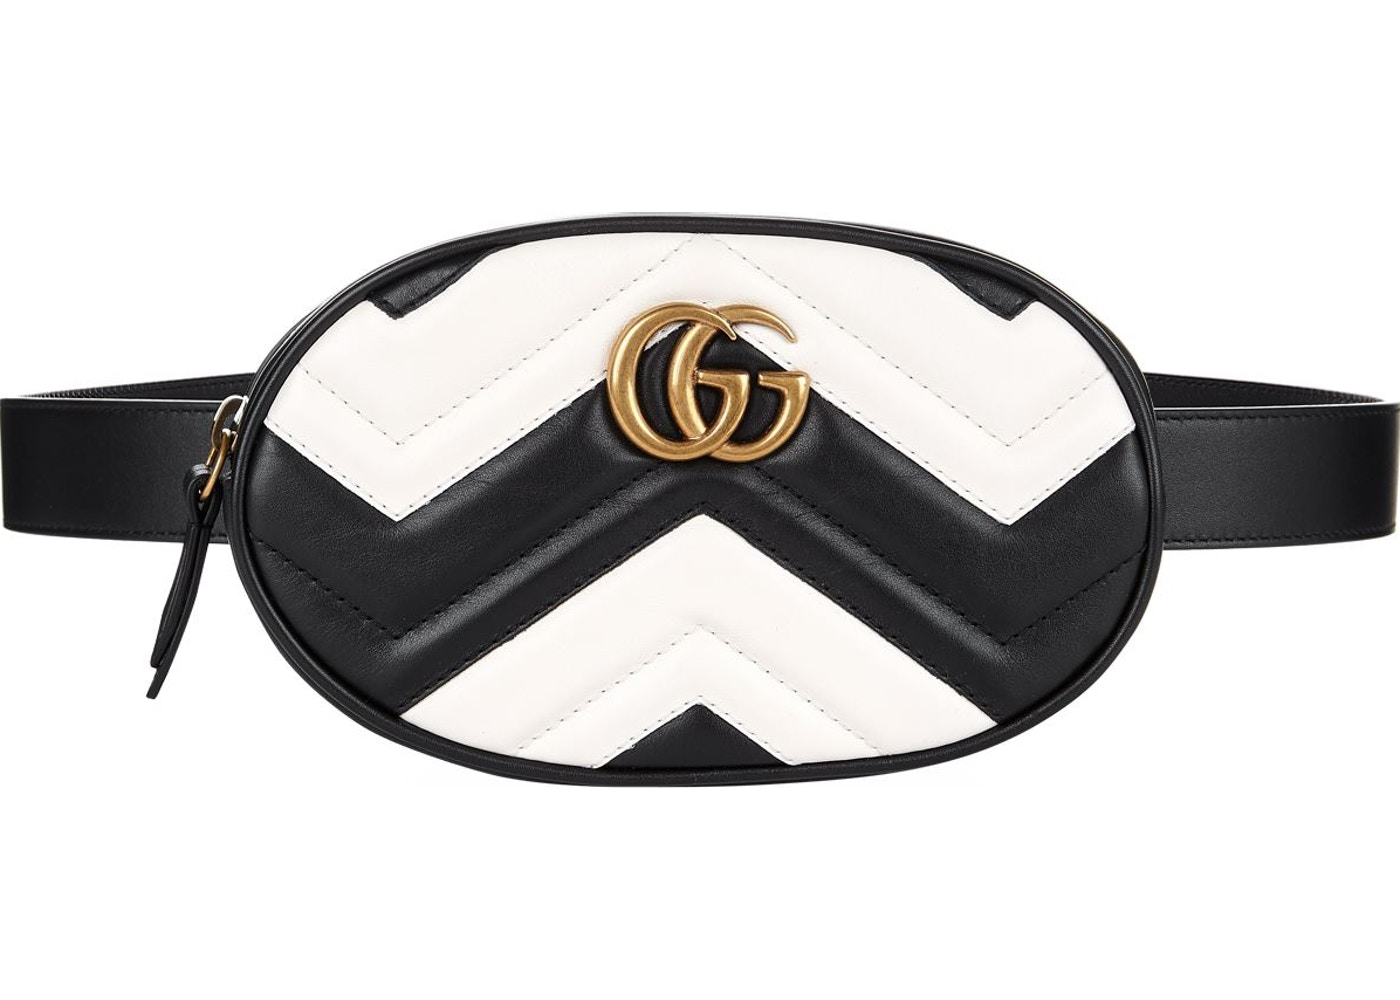 10c01389cff Gucci Marmont Belt Bag Matelasse GG Black White. Matelasse GG Black White